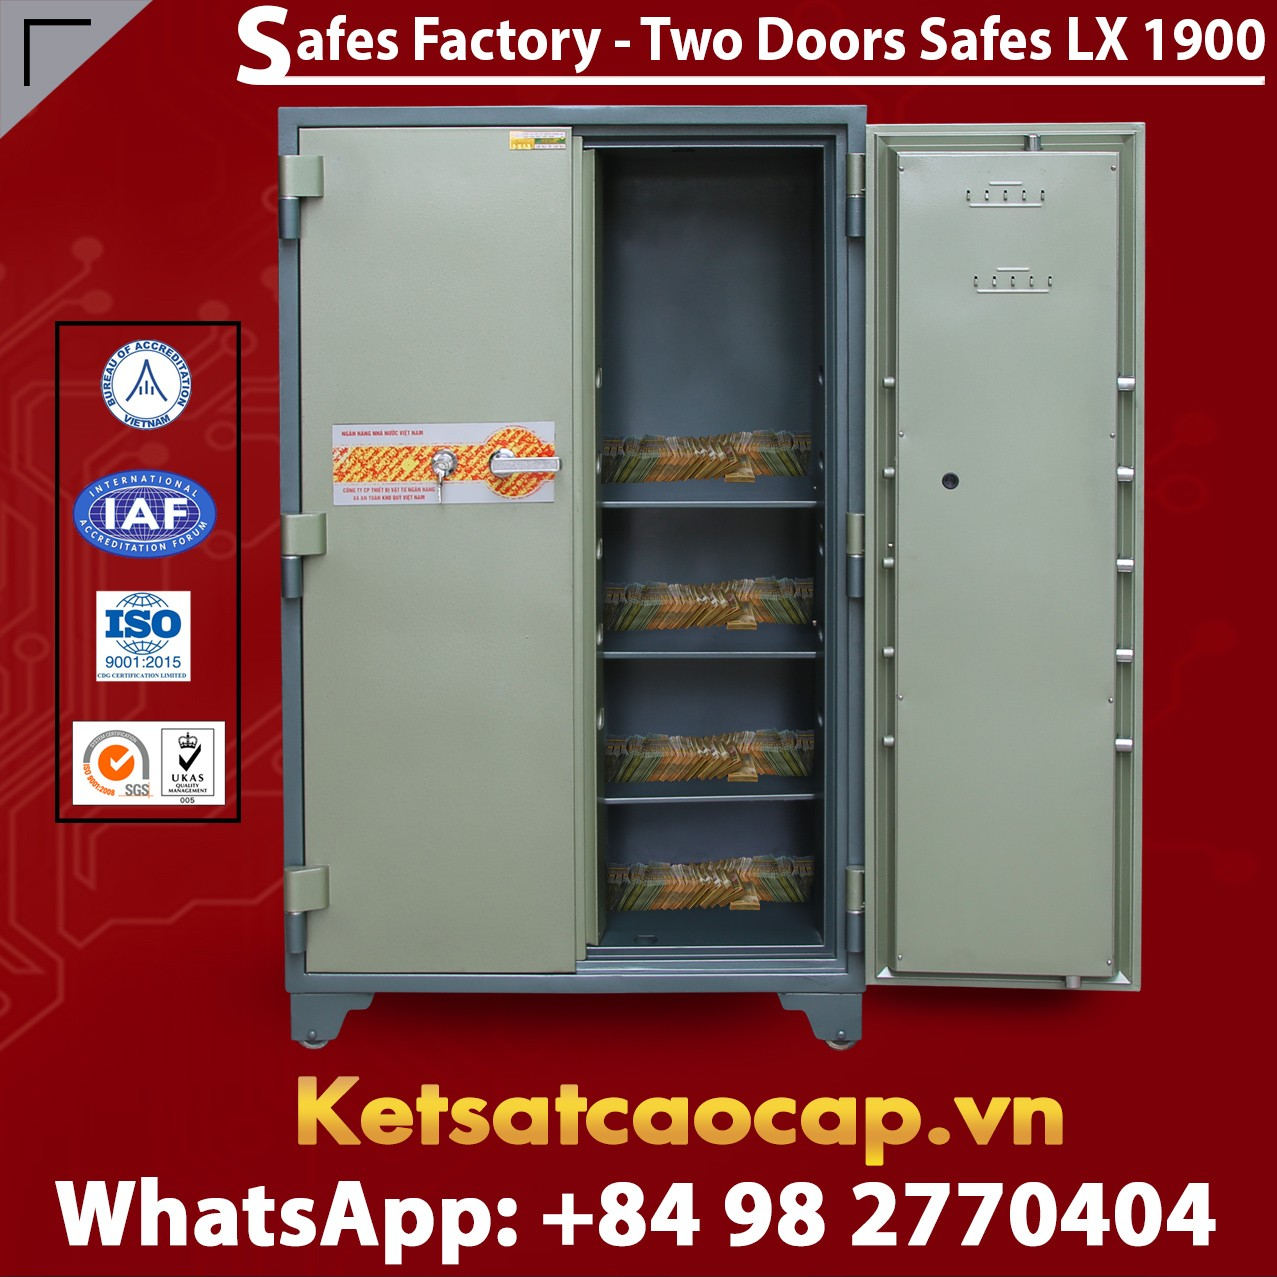 Bank Safes LX1900 DK Two Doors New Version Luxury